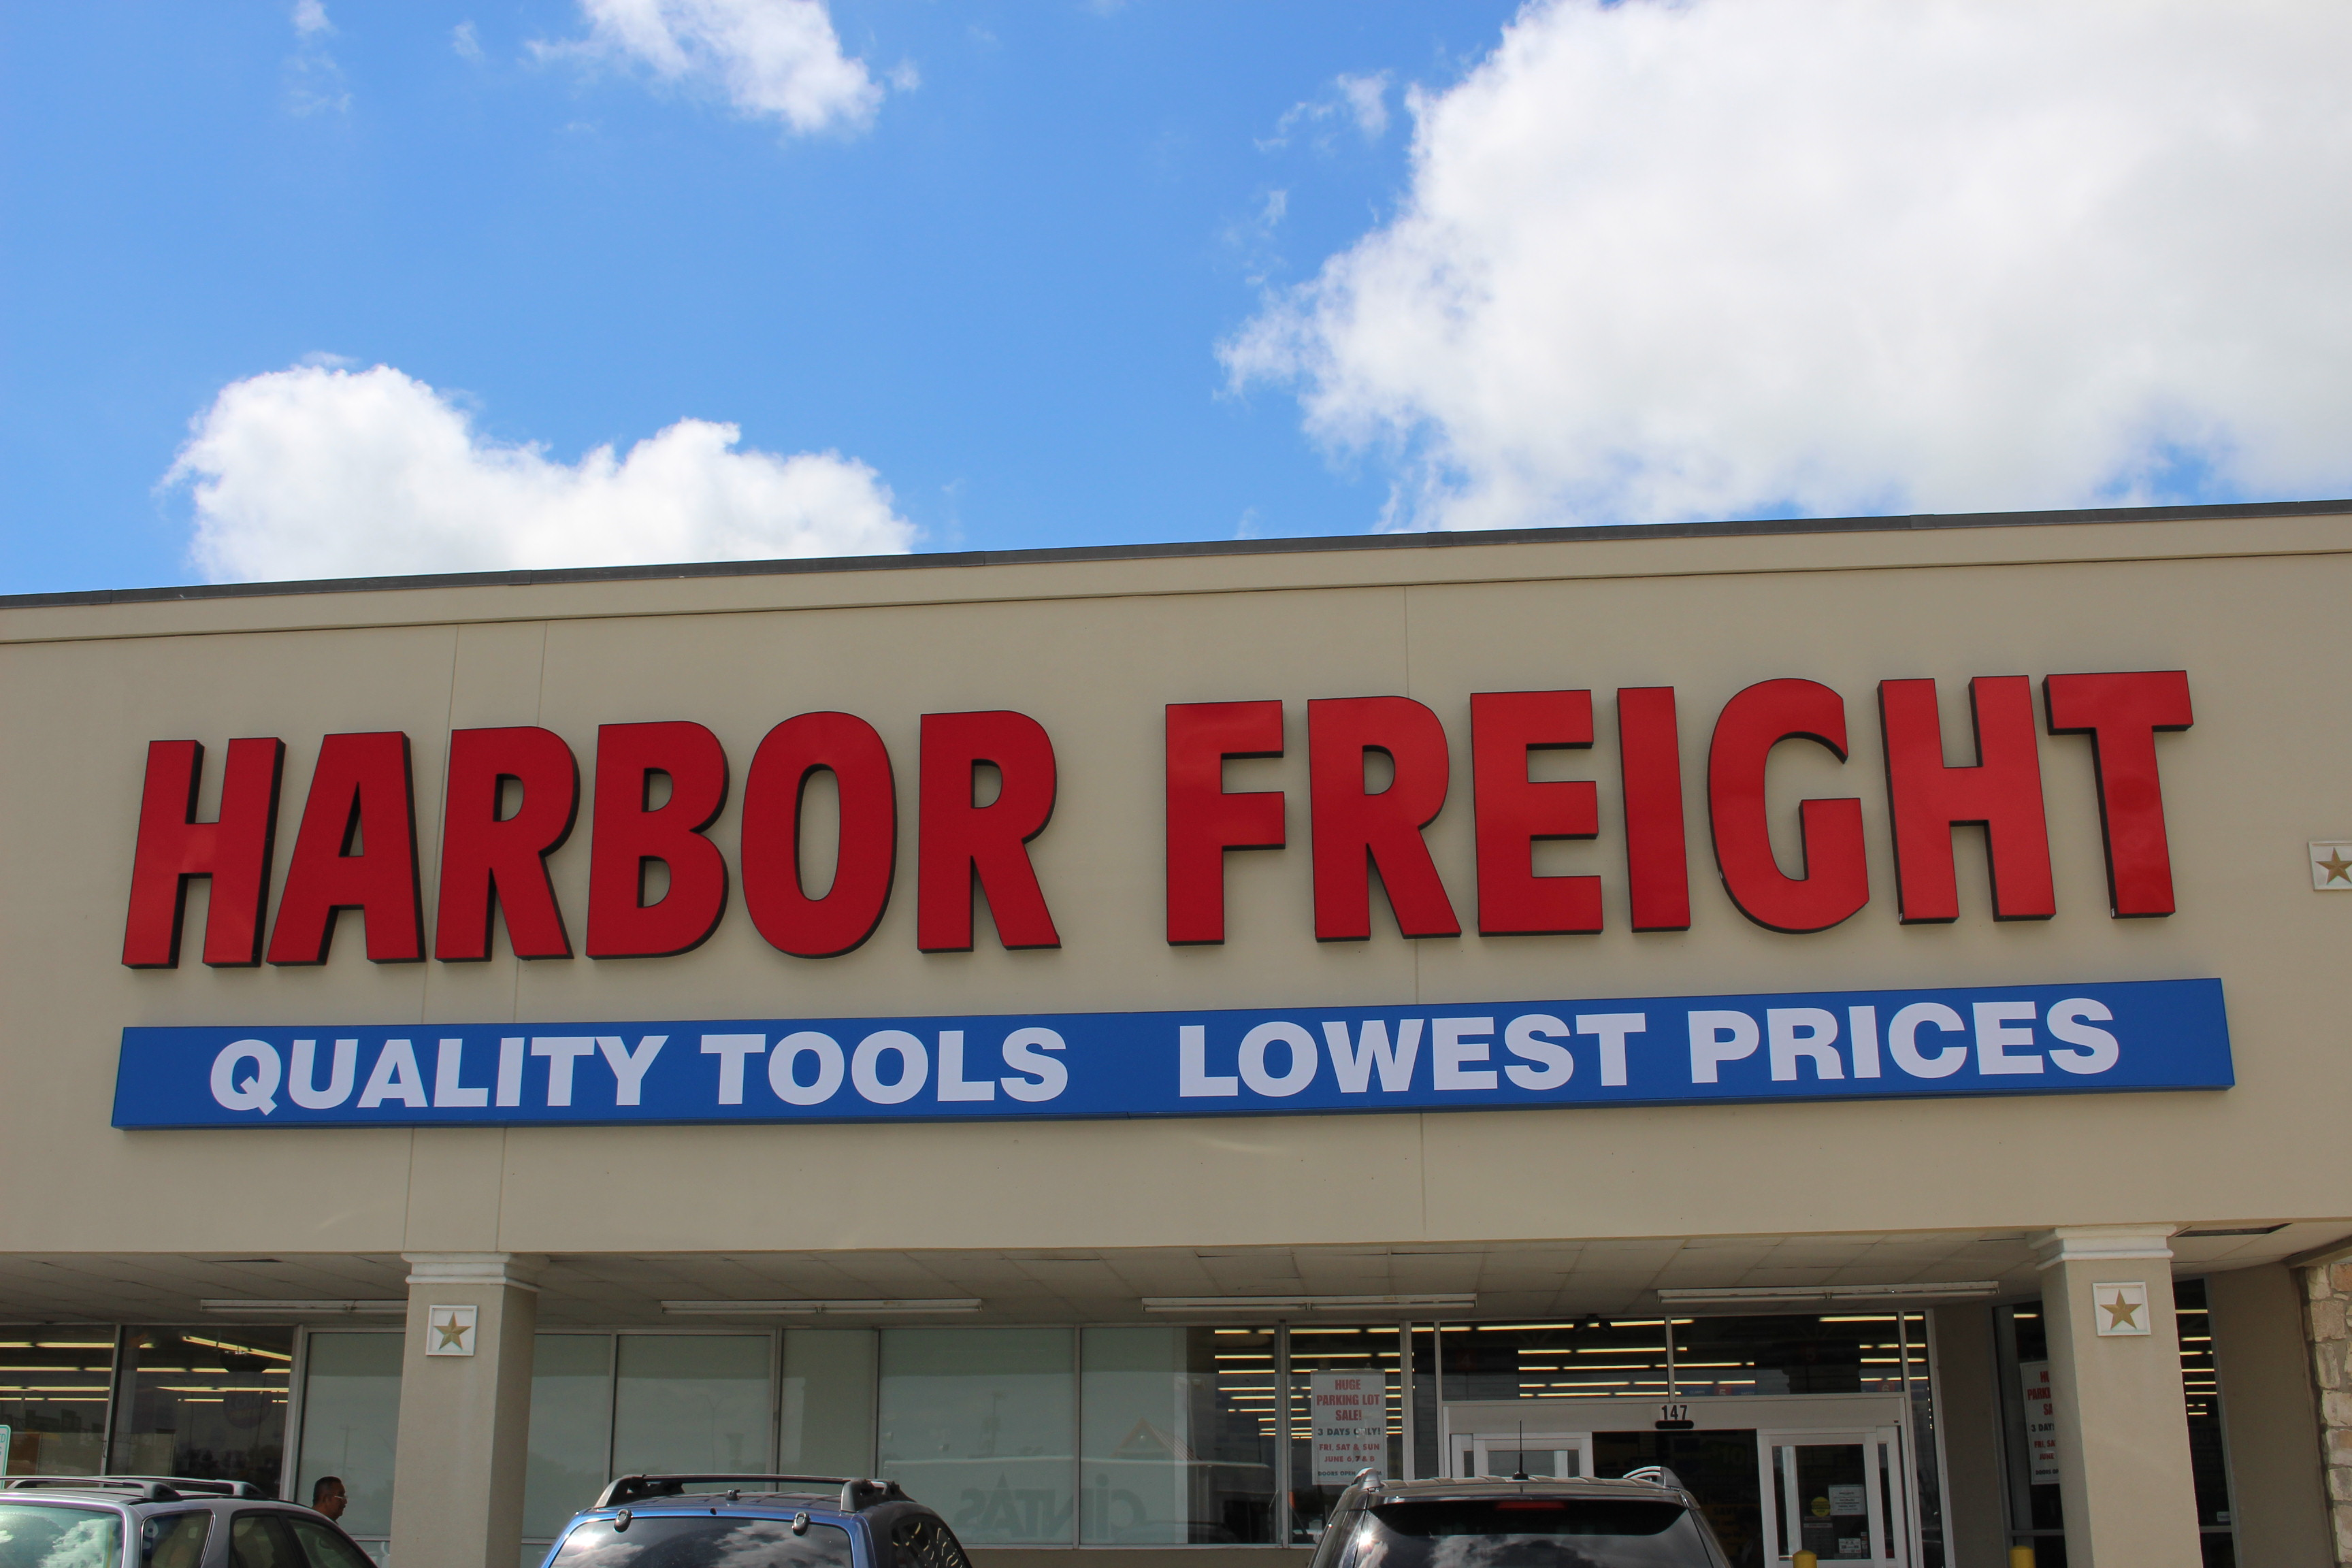 Harbor Freight is a diversified, full service trucking, warehousing and distribution company, conveniently located within the confines of the Port Newark/Elizabeth Marine Terminal.